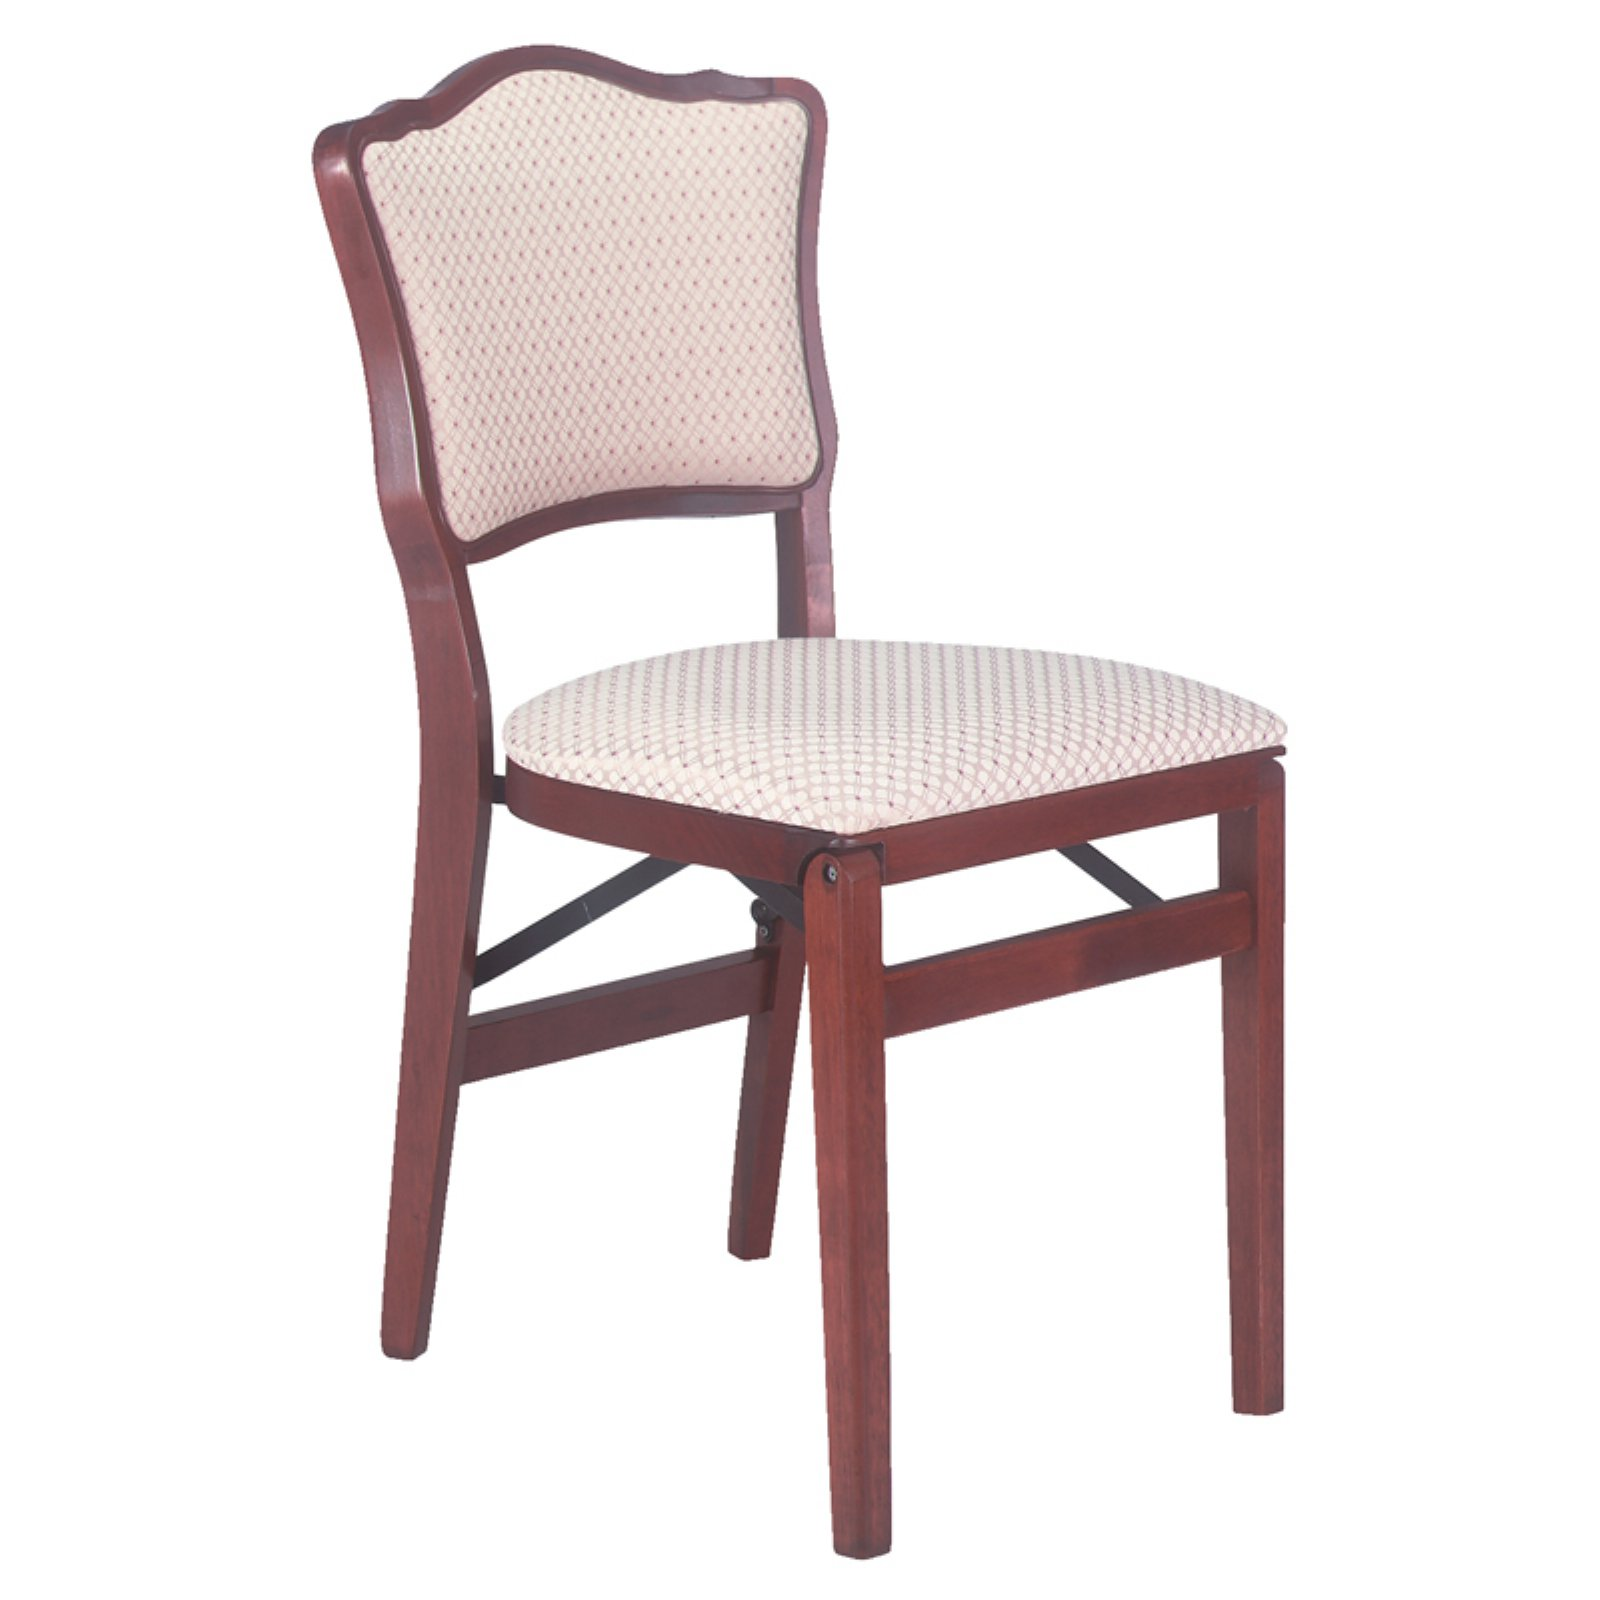 French upholstered back folding chair - Blush fabric and light cherry